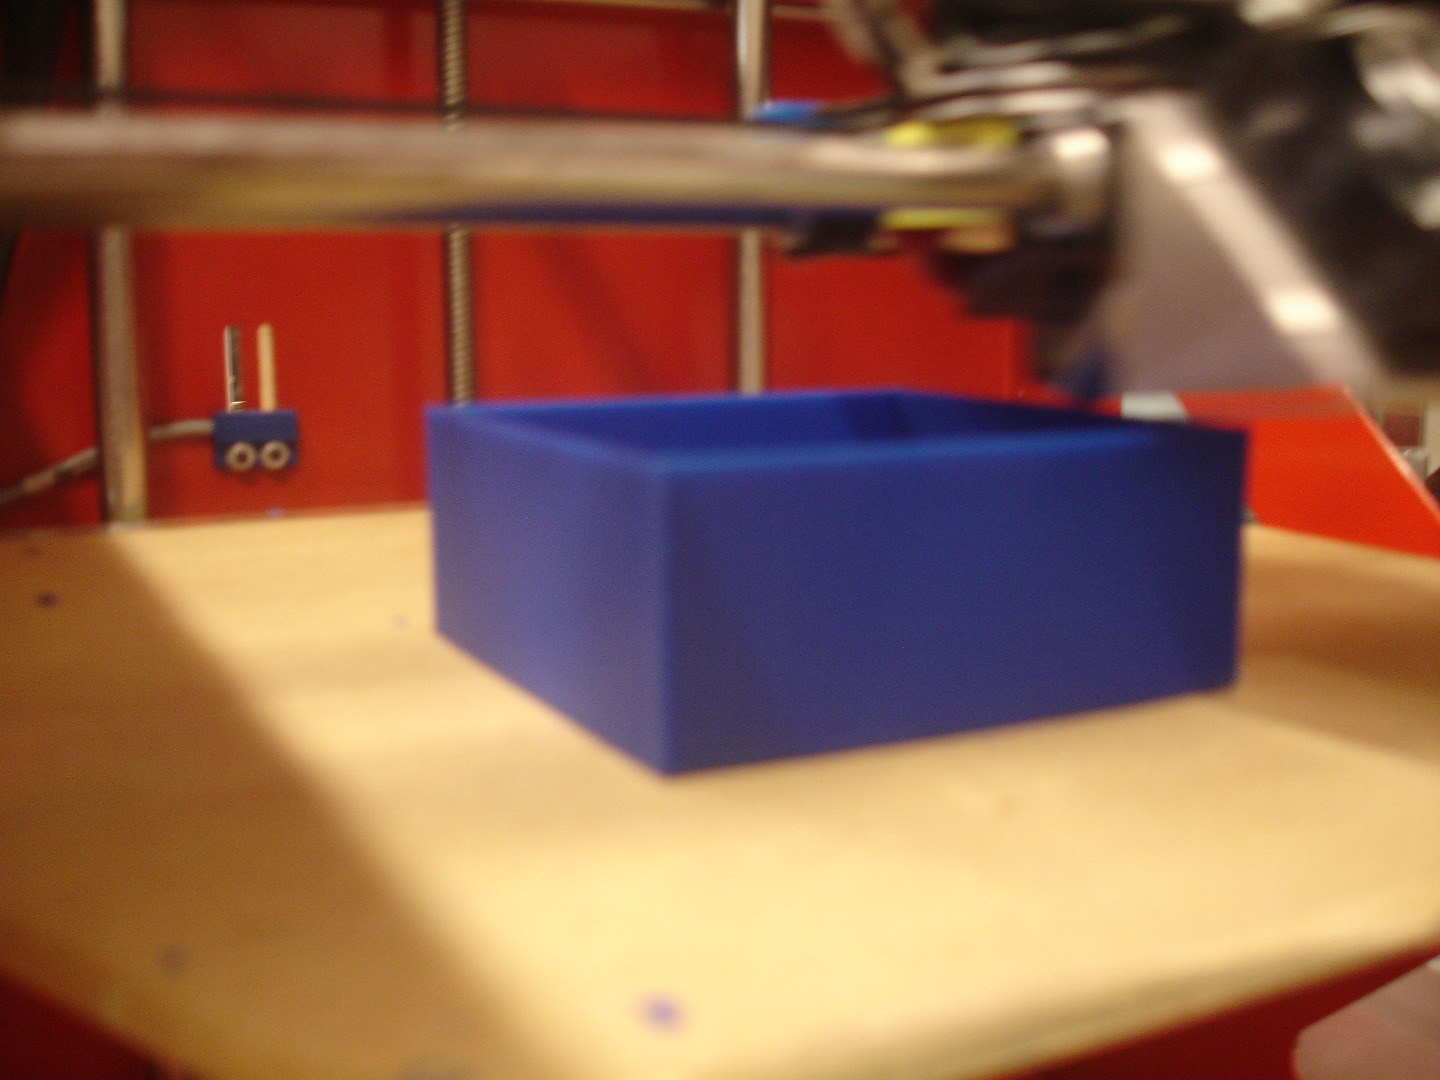 Picture of Bin With 3D Printer